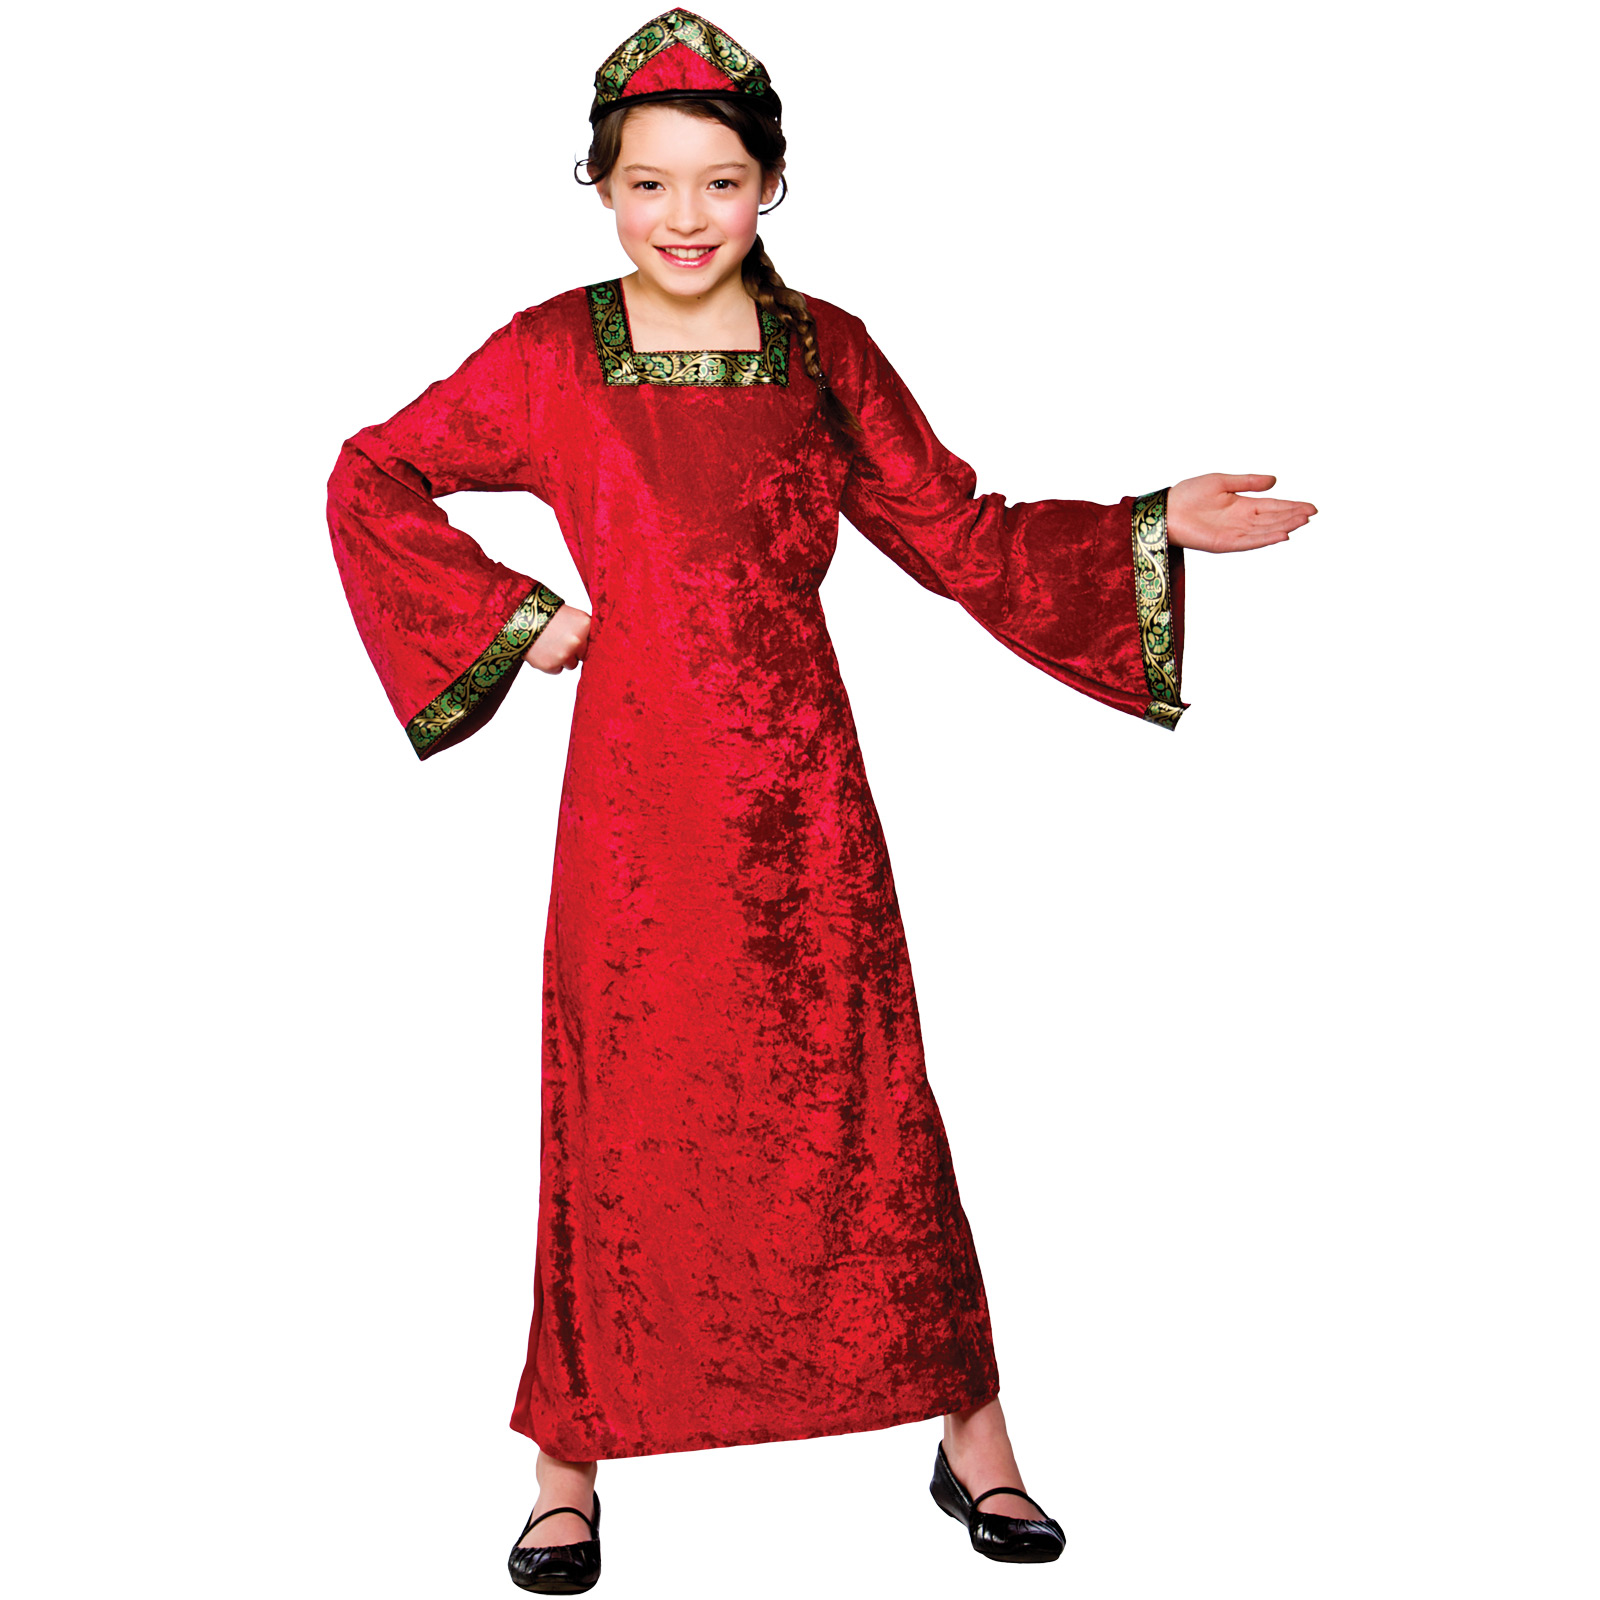 Child-Girls-Medieval-Princess-Red-Costume-Fancy-Dress-Up-Play-Party-Halloween